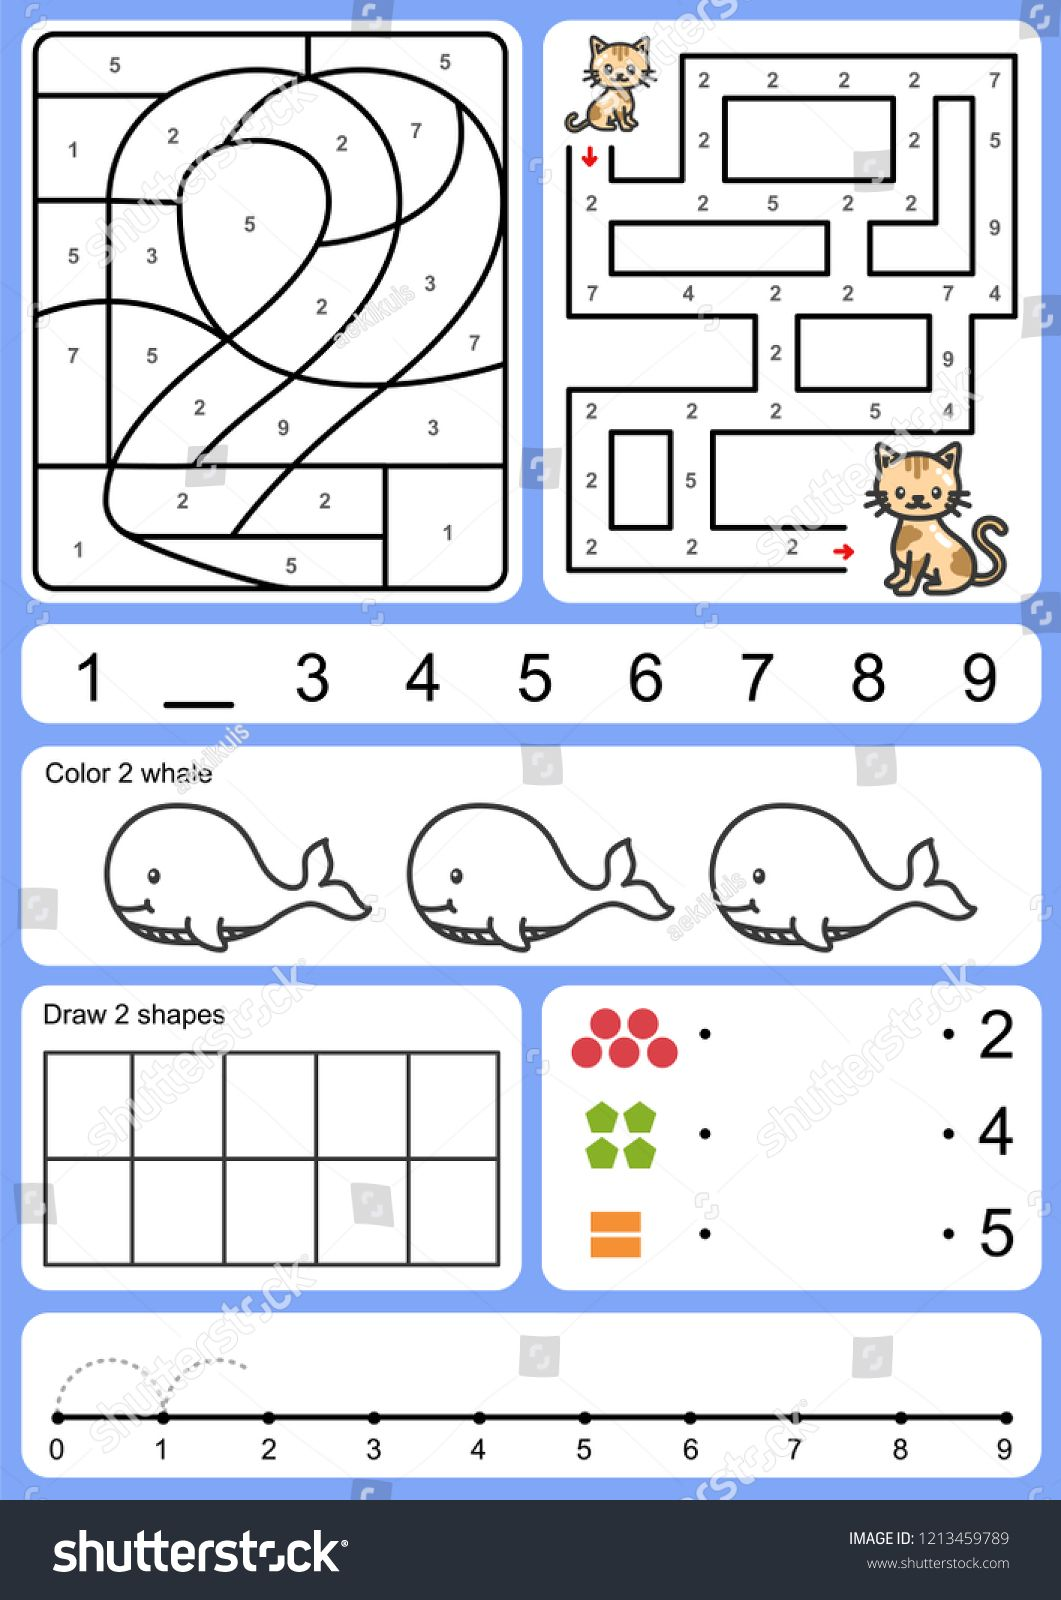 Coloring Tracking Matching And Drawing Object Of Number Worksheet For Education Sponsored Ad Matching Dr Illustration Design Template Design Drawings